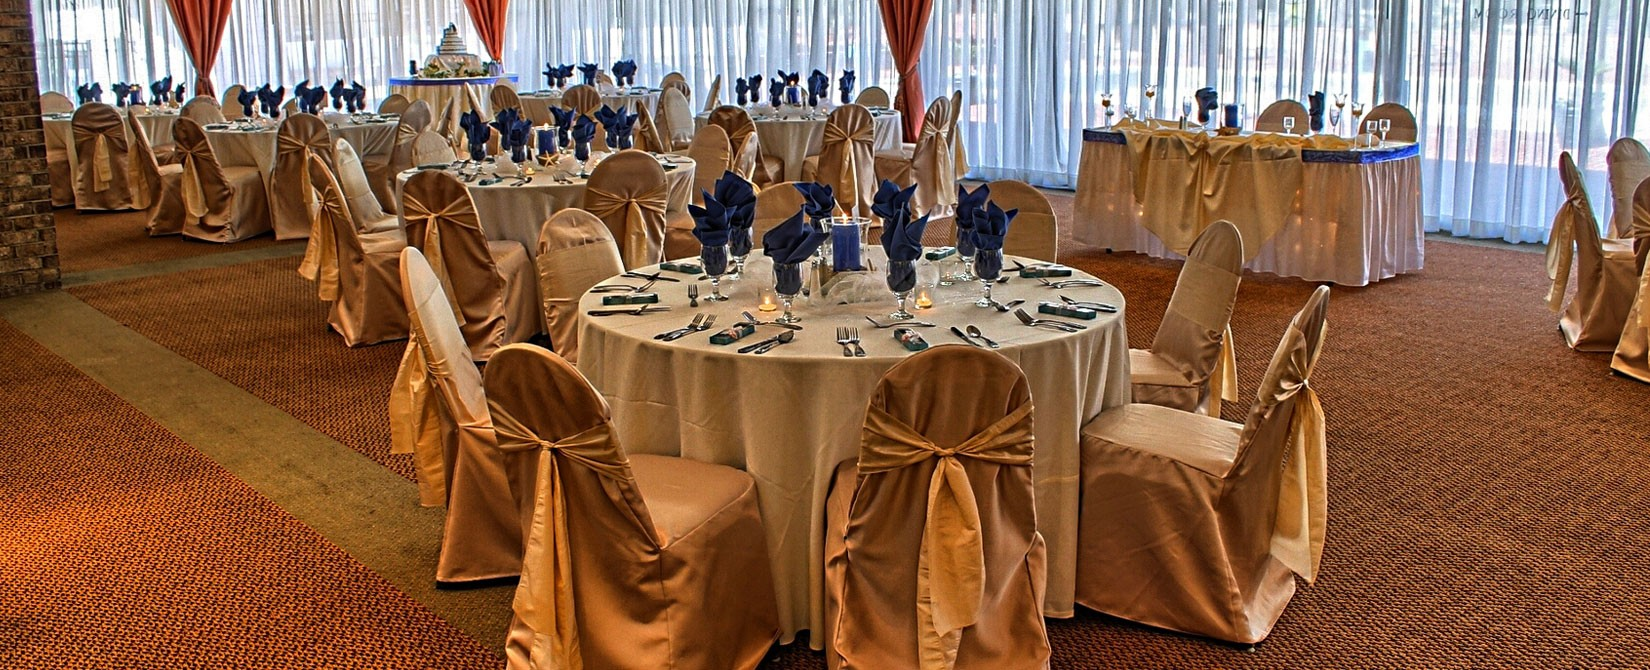 gold and navy wedding place settings and chair wraps at The Caravelle Resort